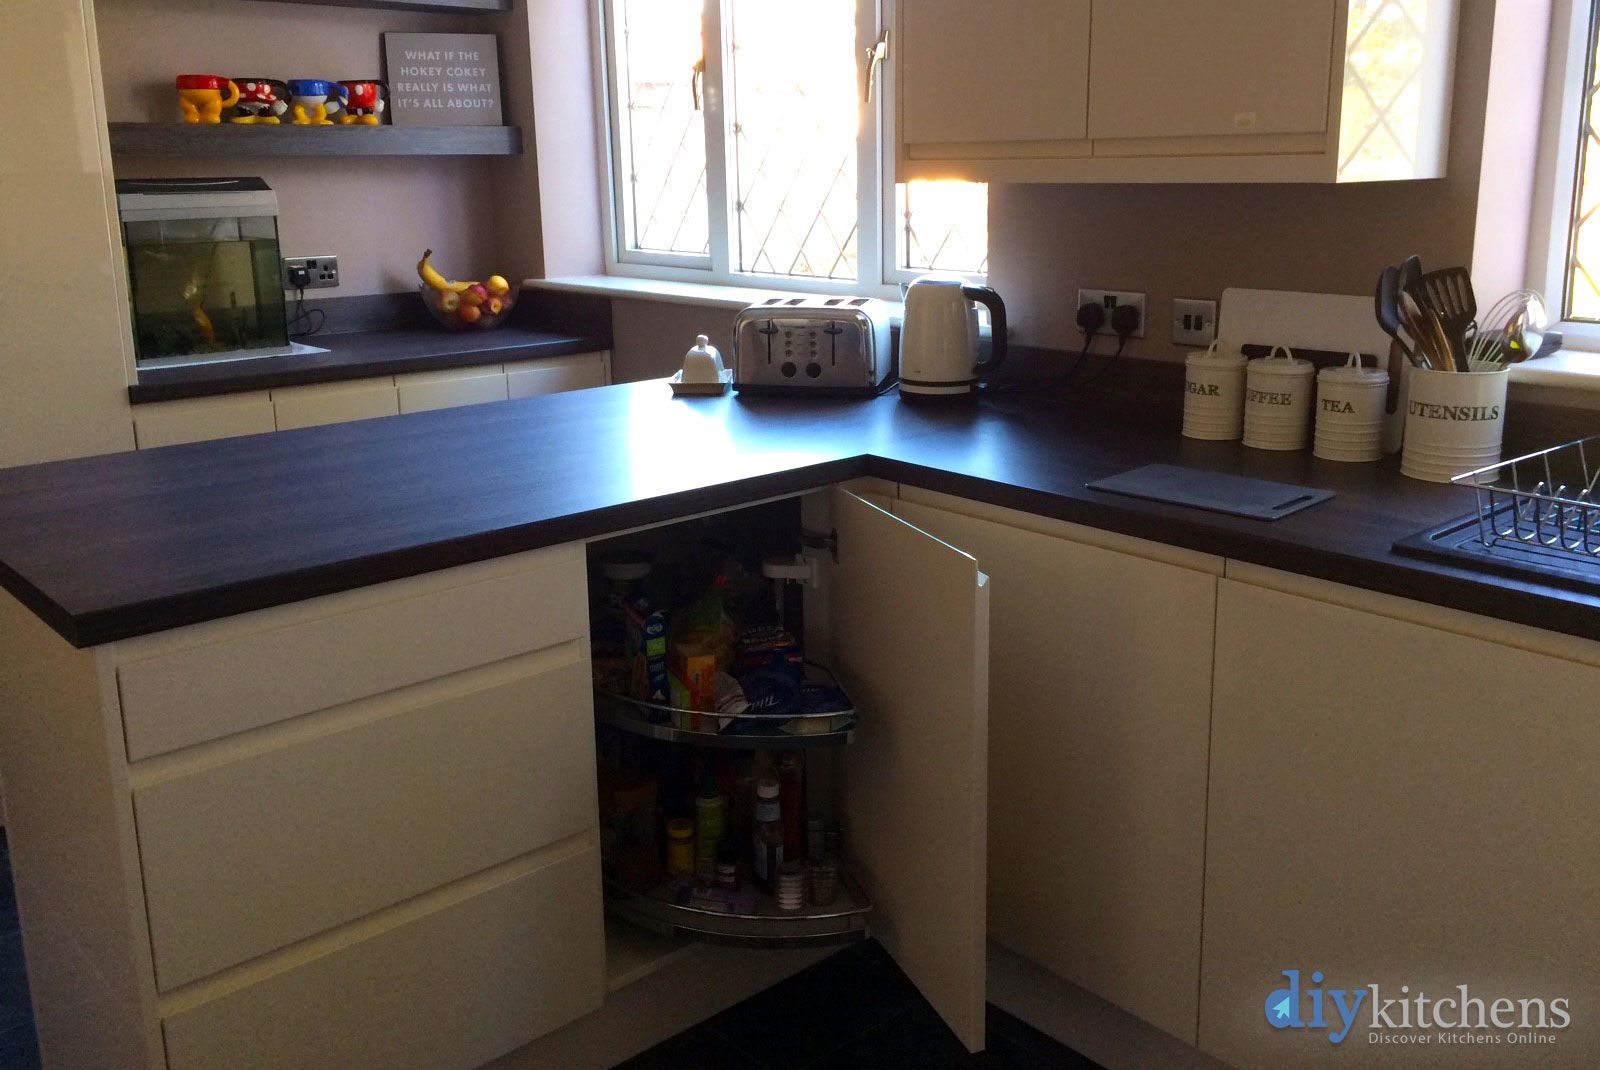 View kitchens for Diy kitchens com reviews